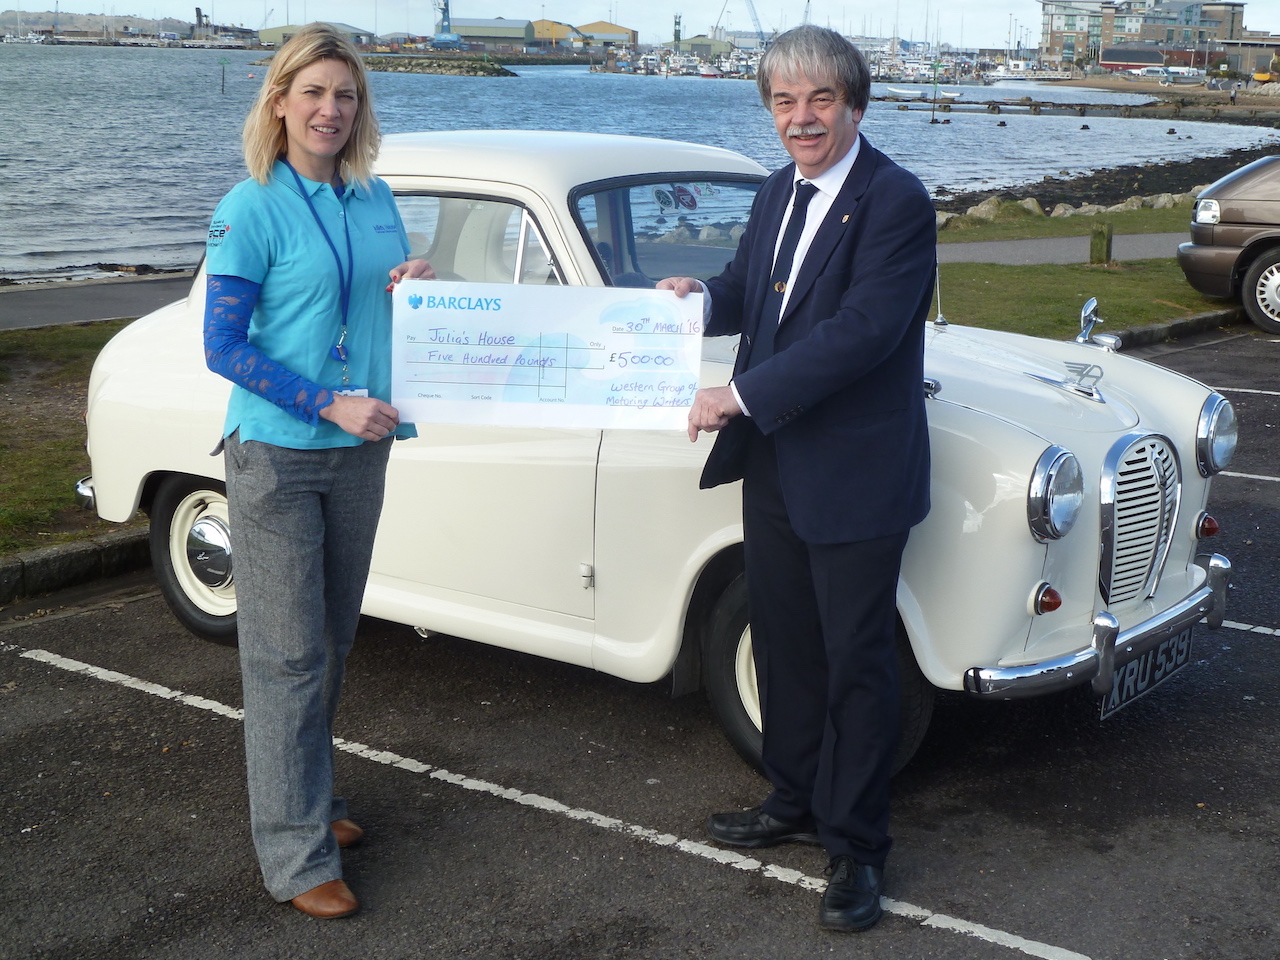 Jacqui Greenhaf, Community Fundraising Manager for Julia's House children's hospice, receives a donation of £500 from the Western Group of Motoring Writers.